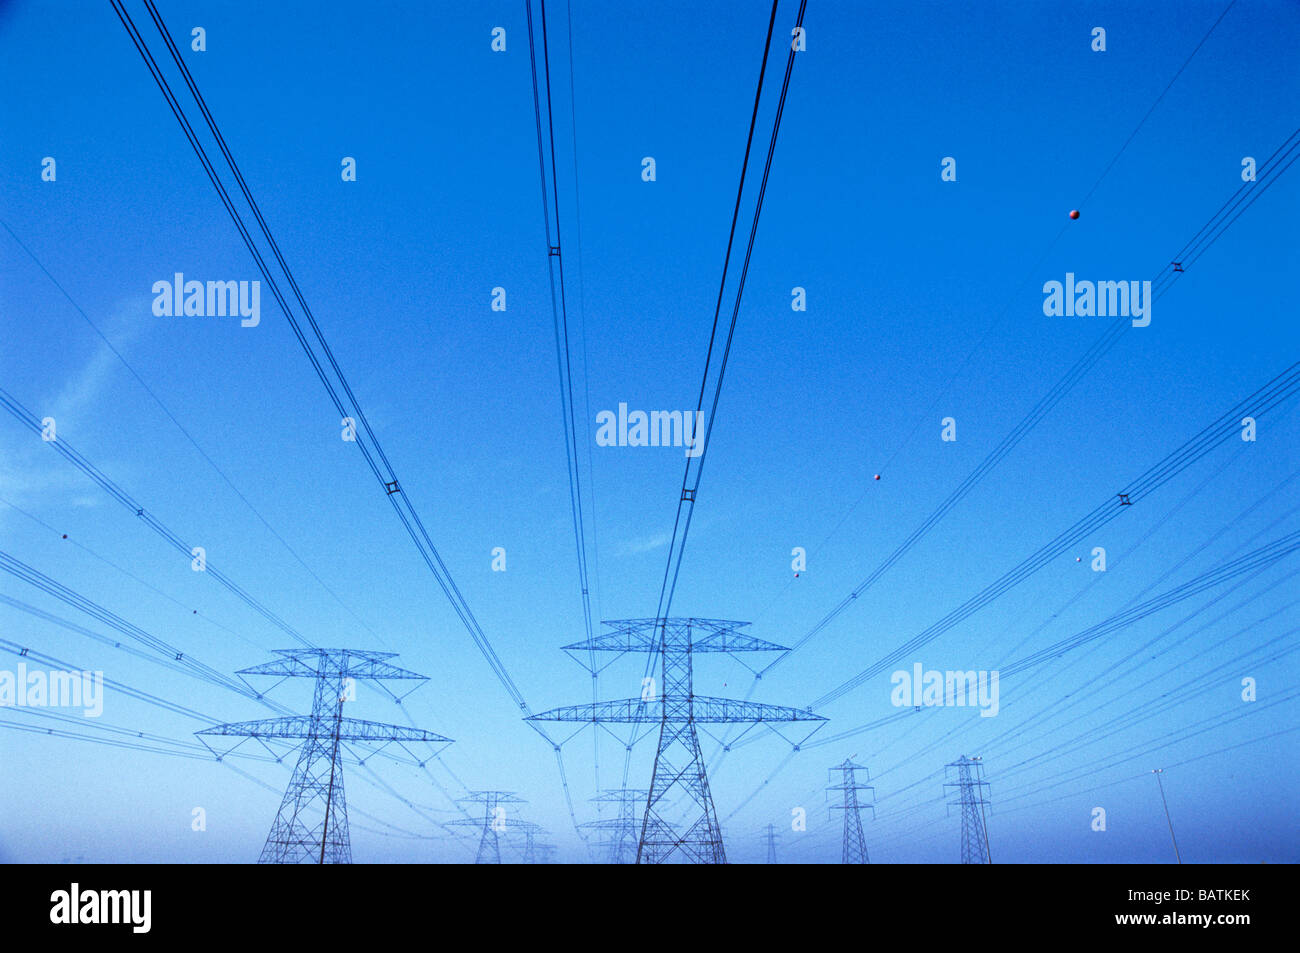 Power lines supported by electricity pylons. - Stock Image